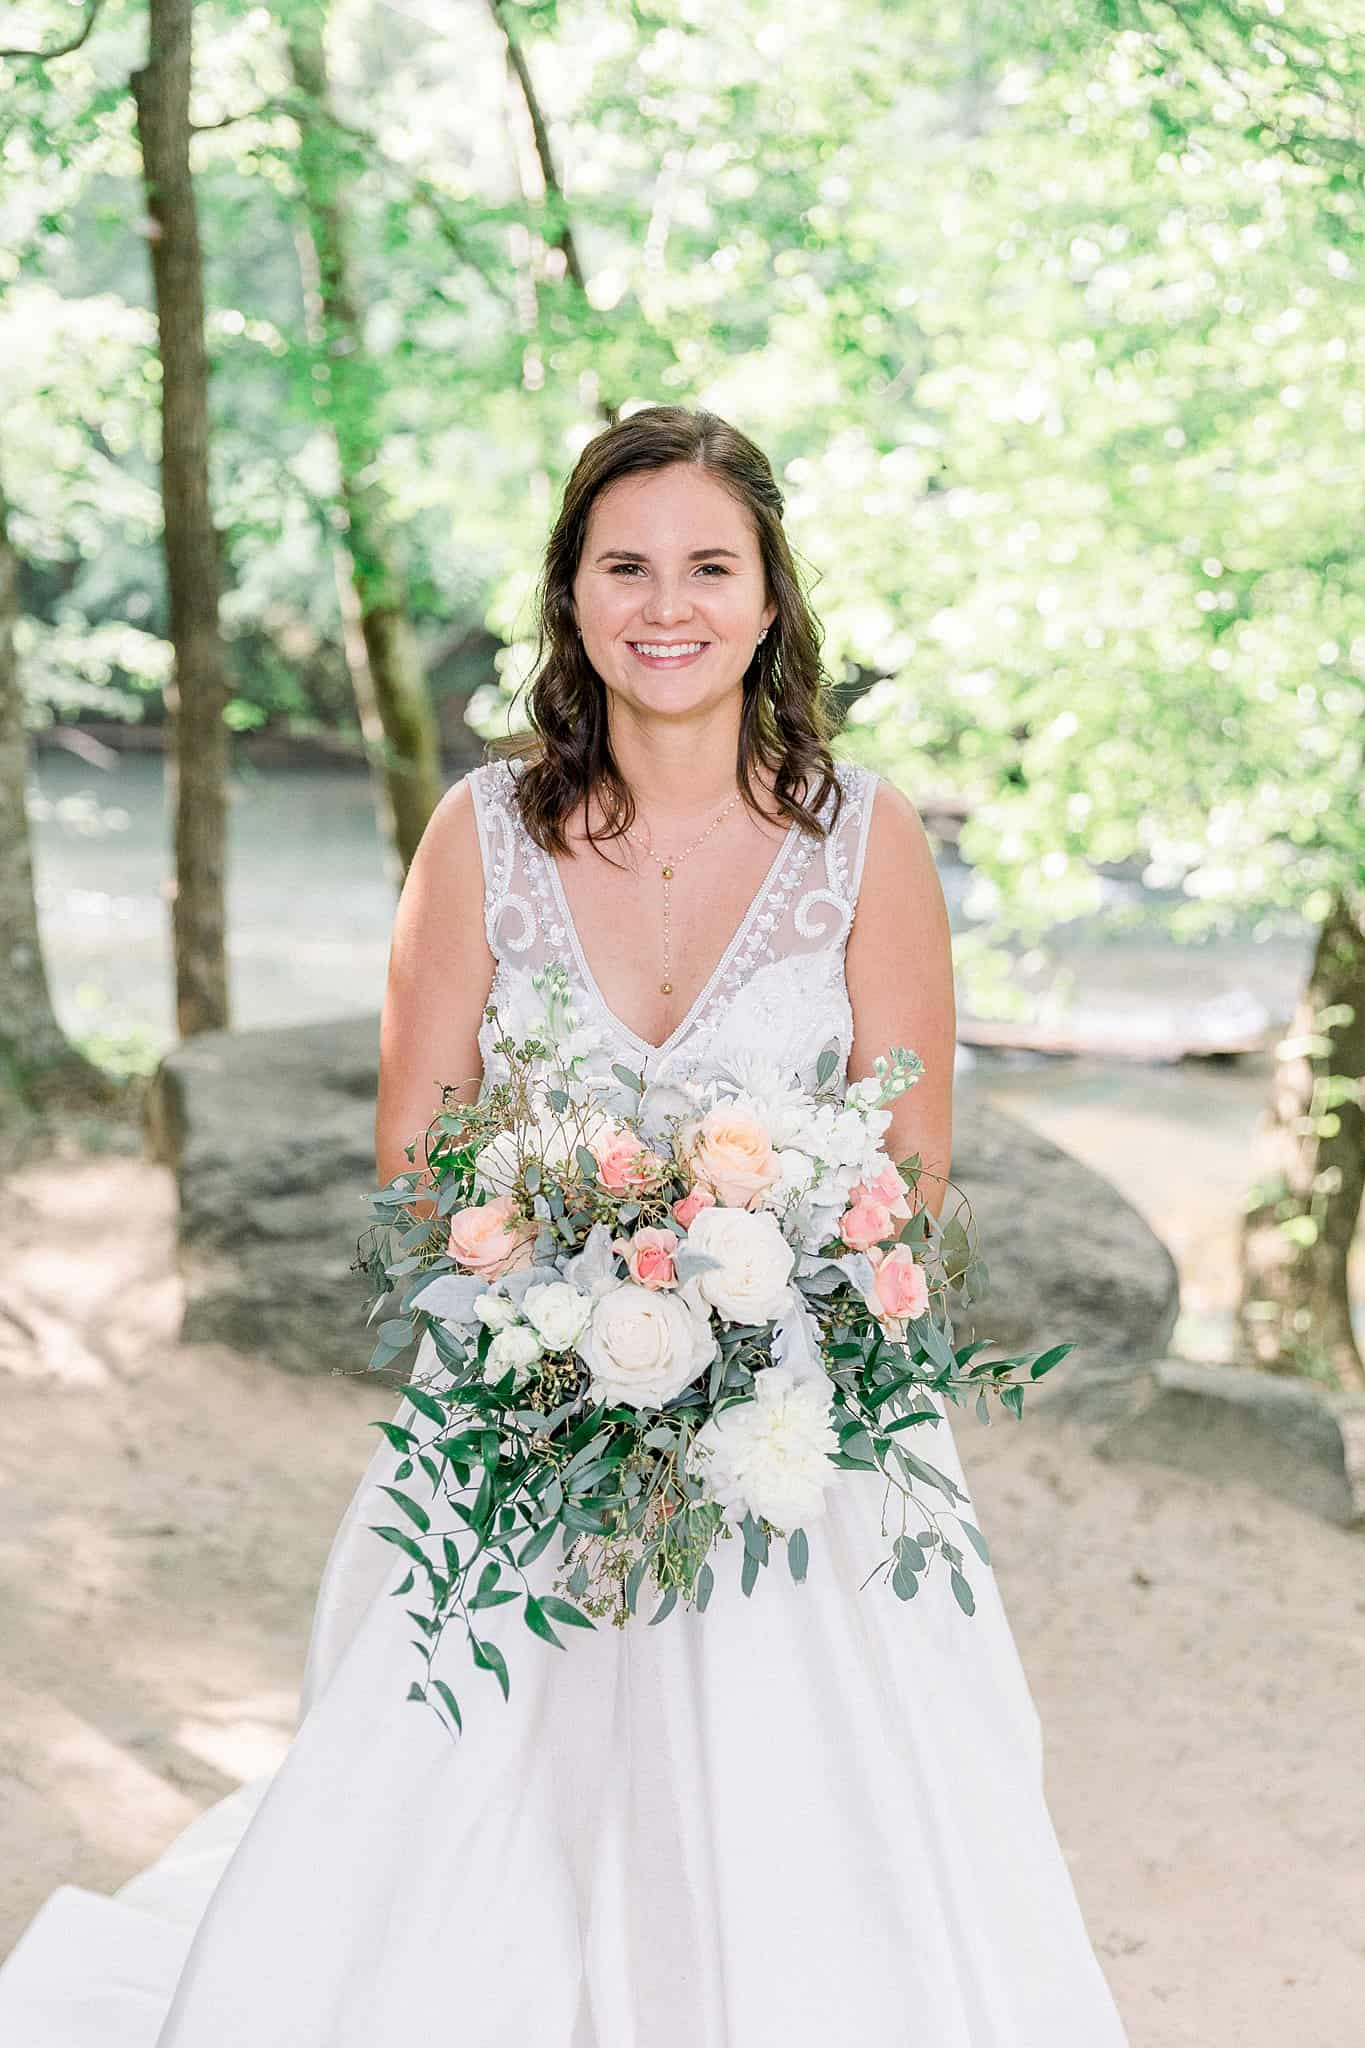 Bride with blush floral arrangement